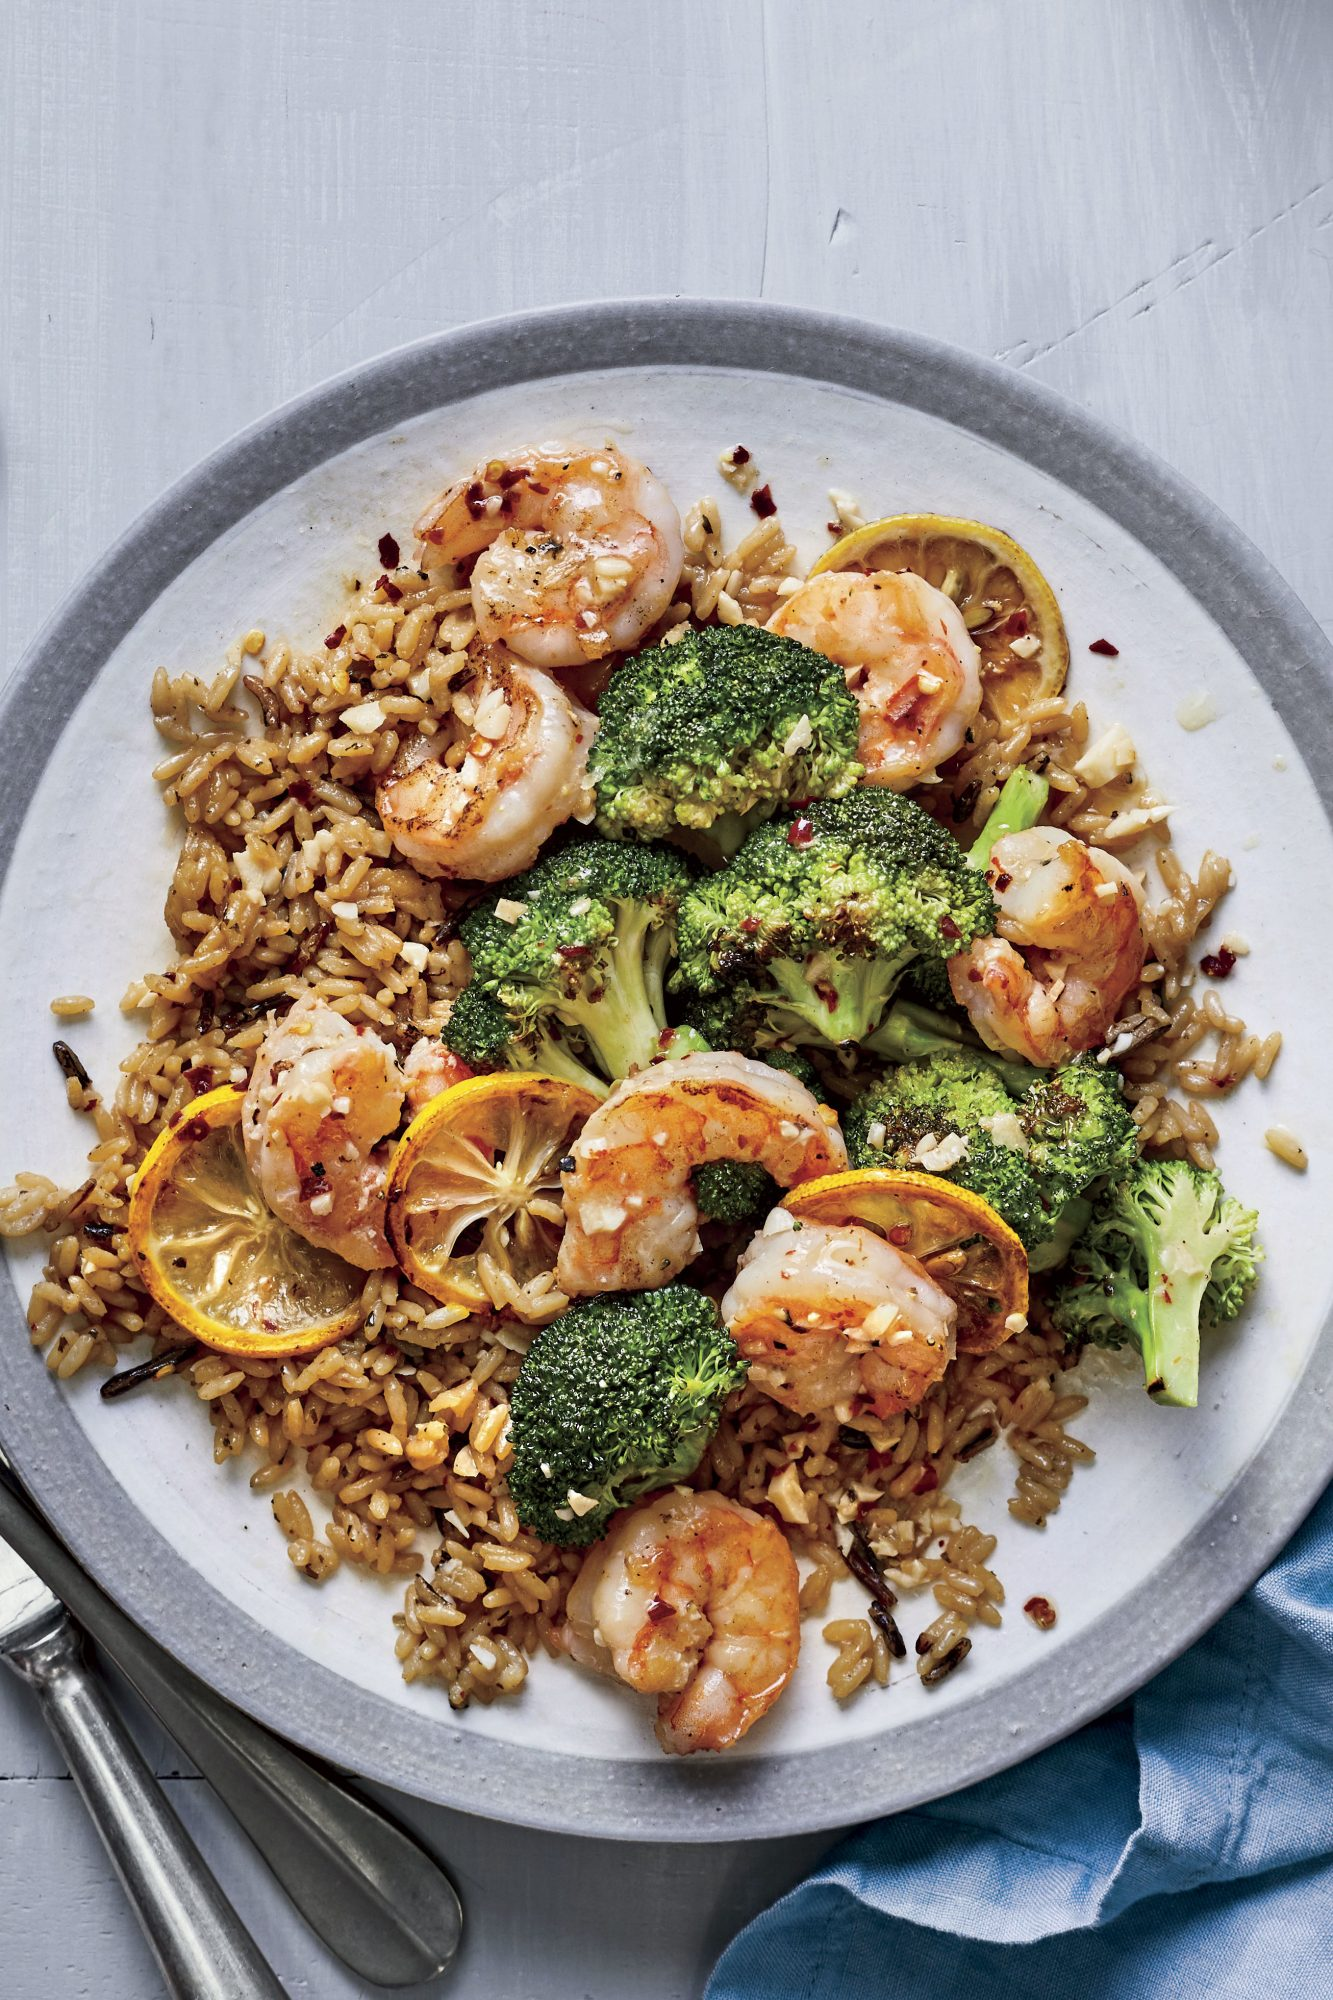 Lemon-Garlic Butter Shrimp with Broccoli